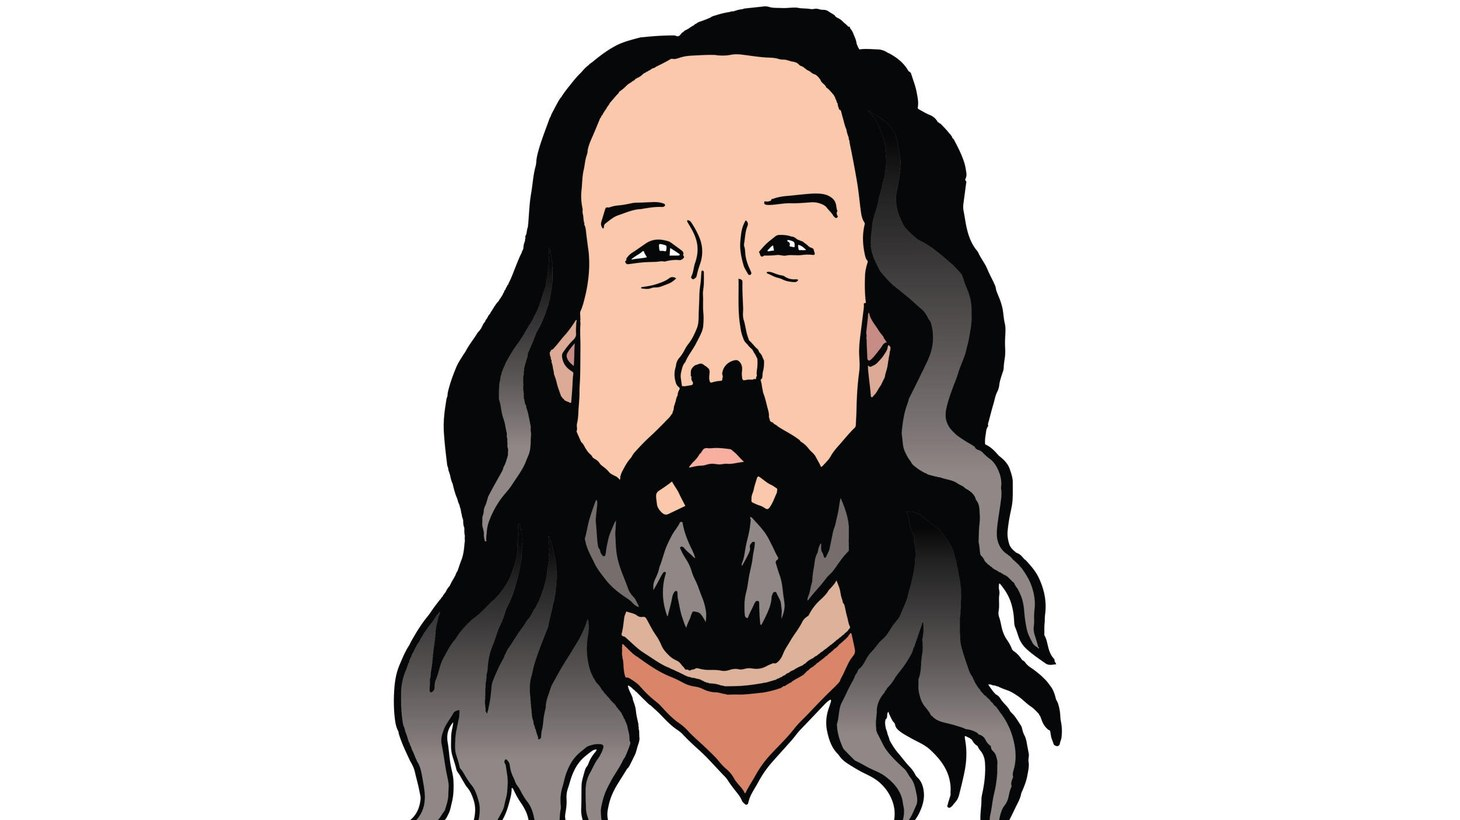 Illustration of Andrew Weatherall.